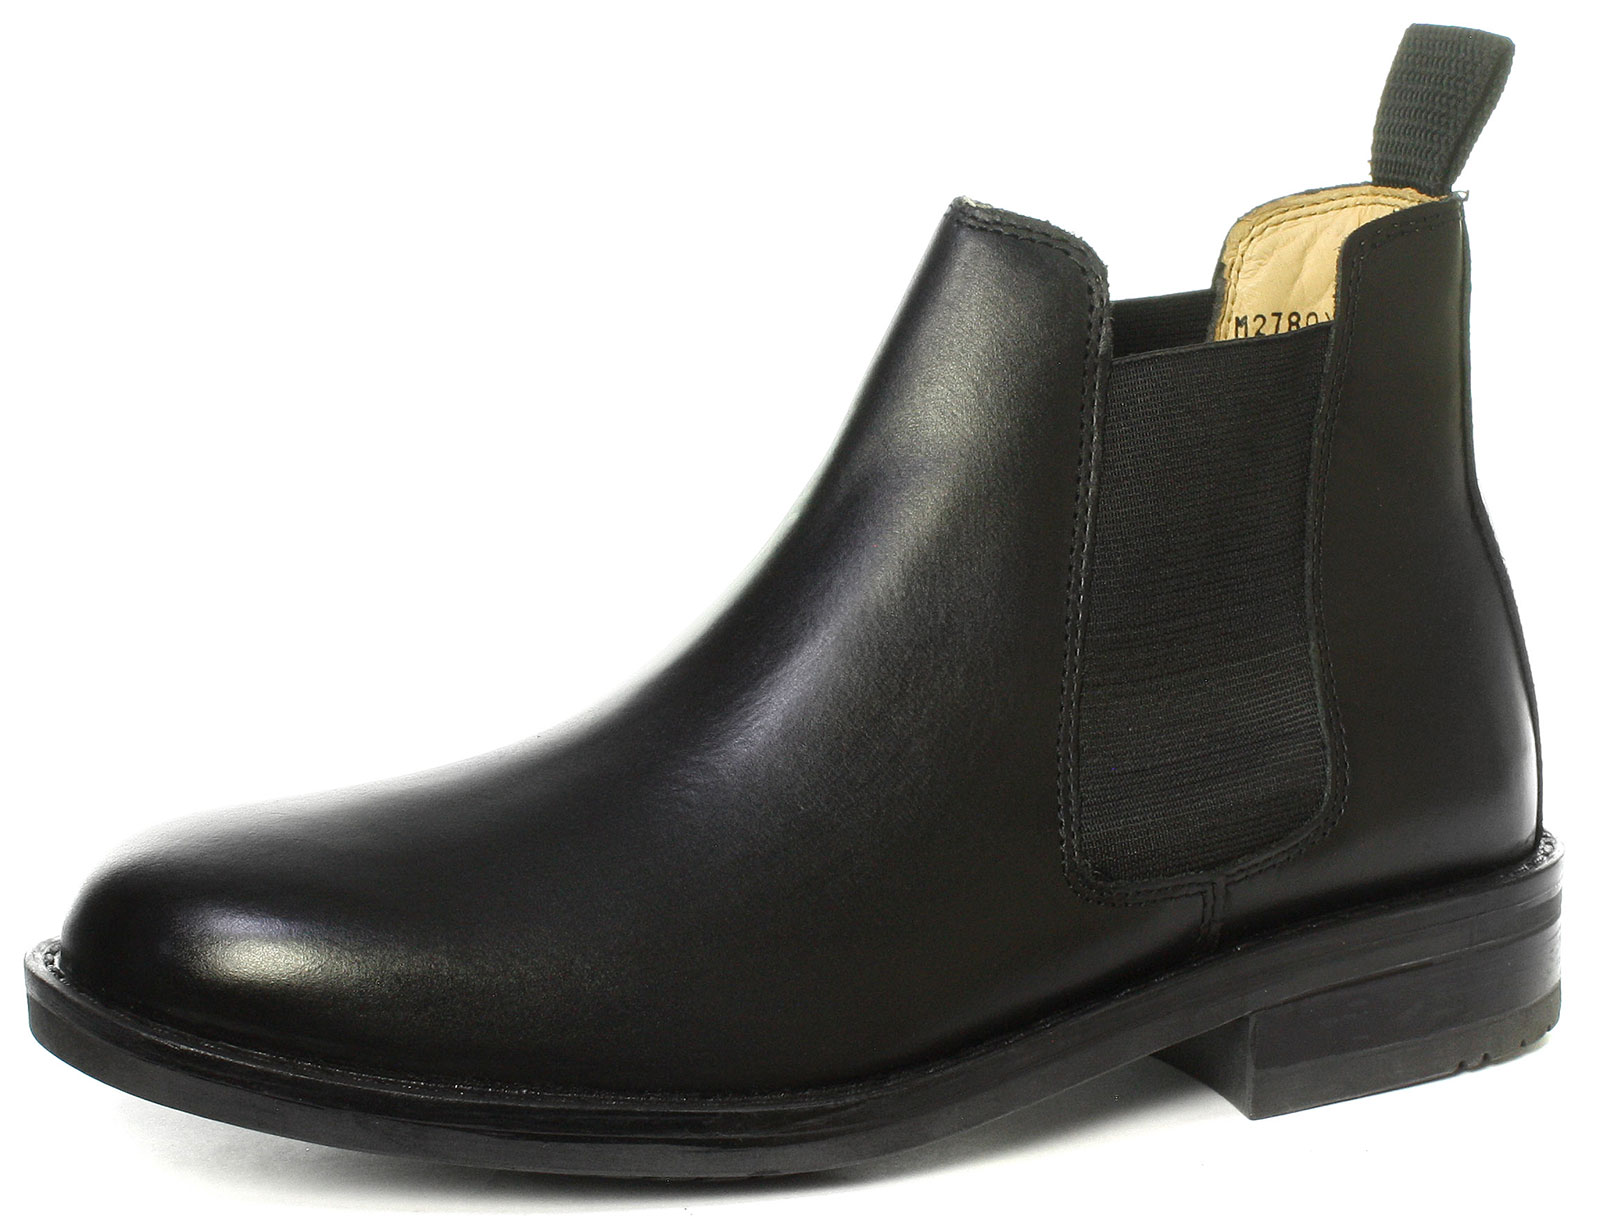 Kensington Classics Mens Twin Gusset All Leather Chelsea Boots